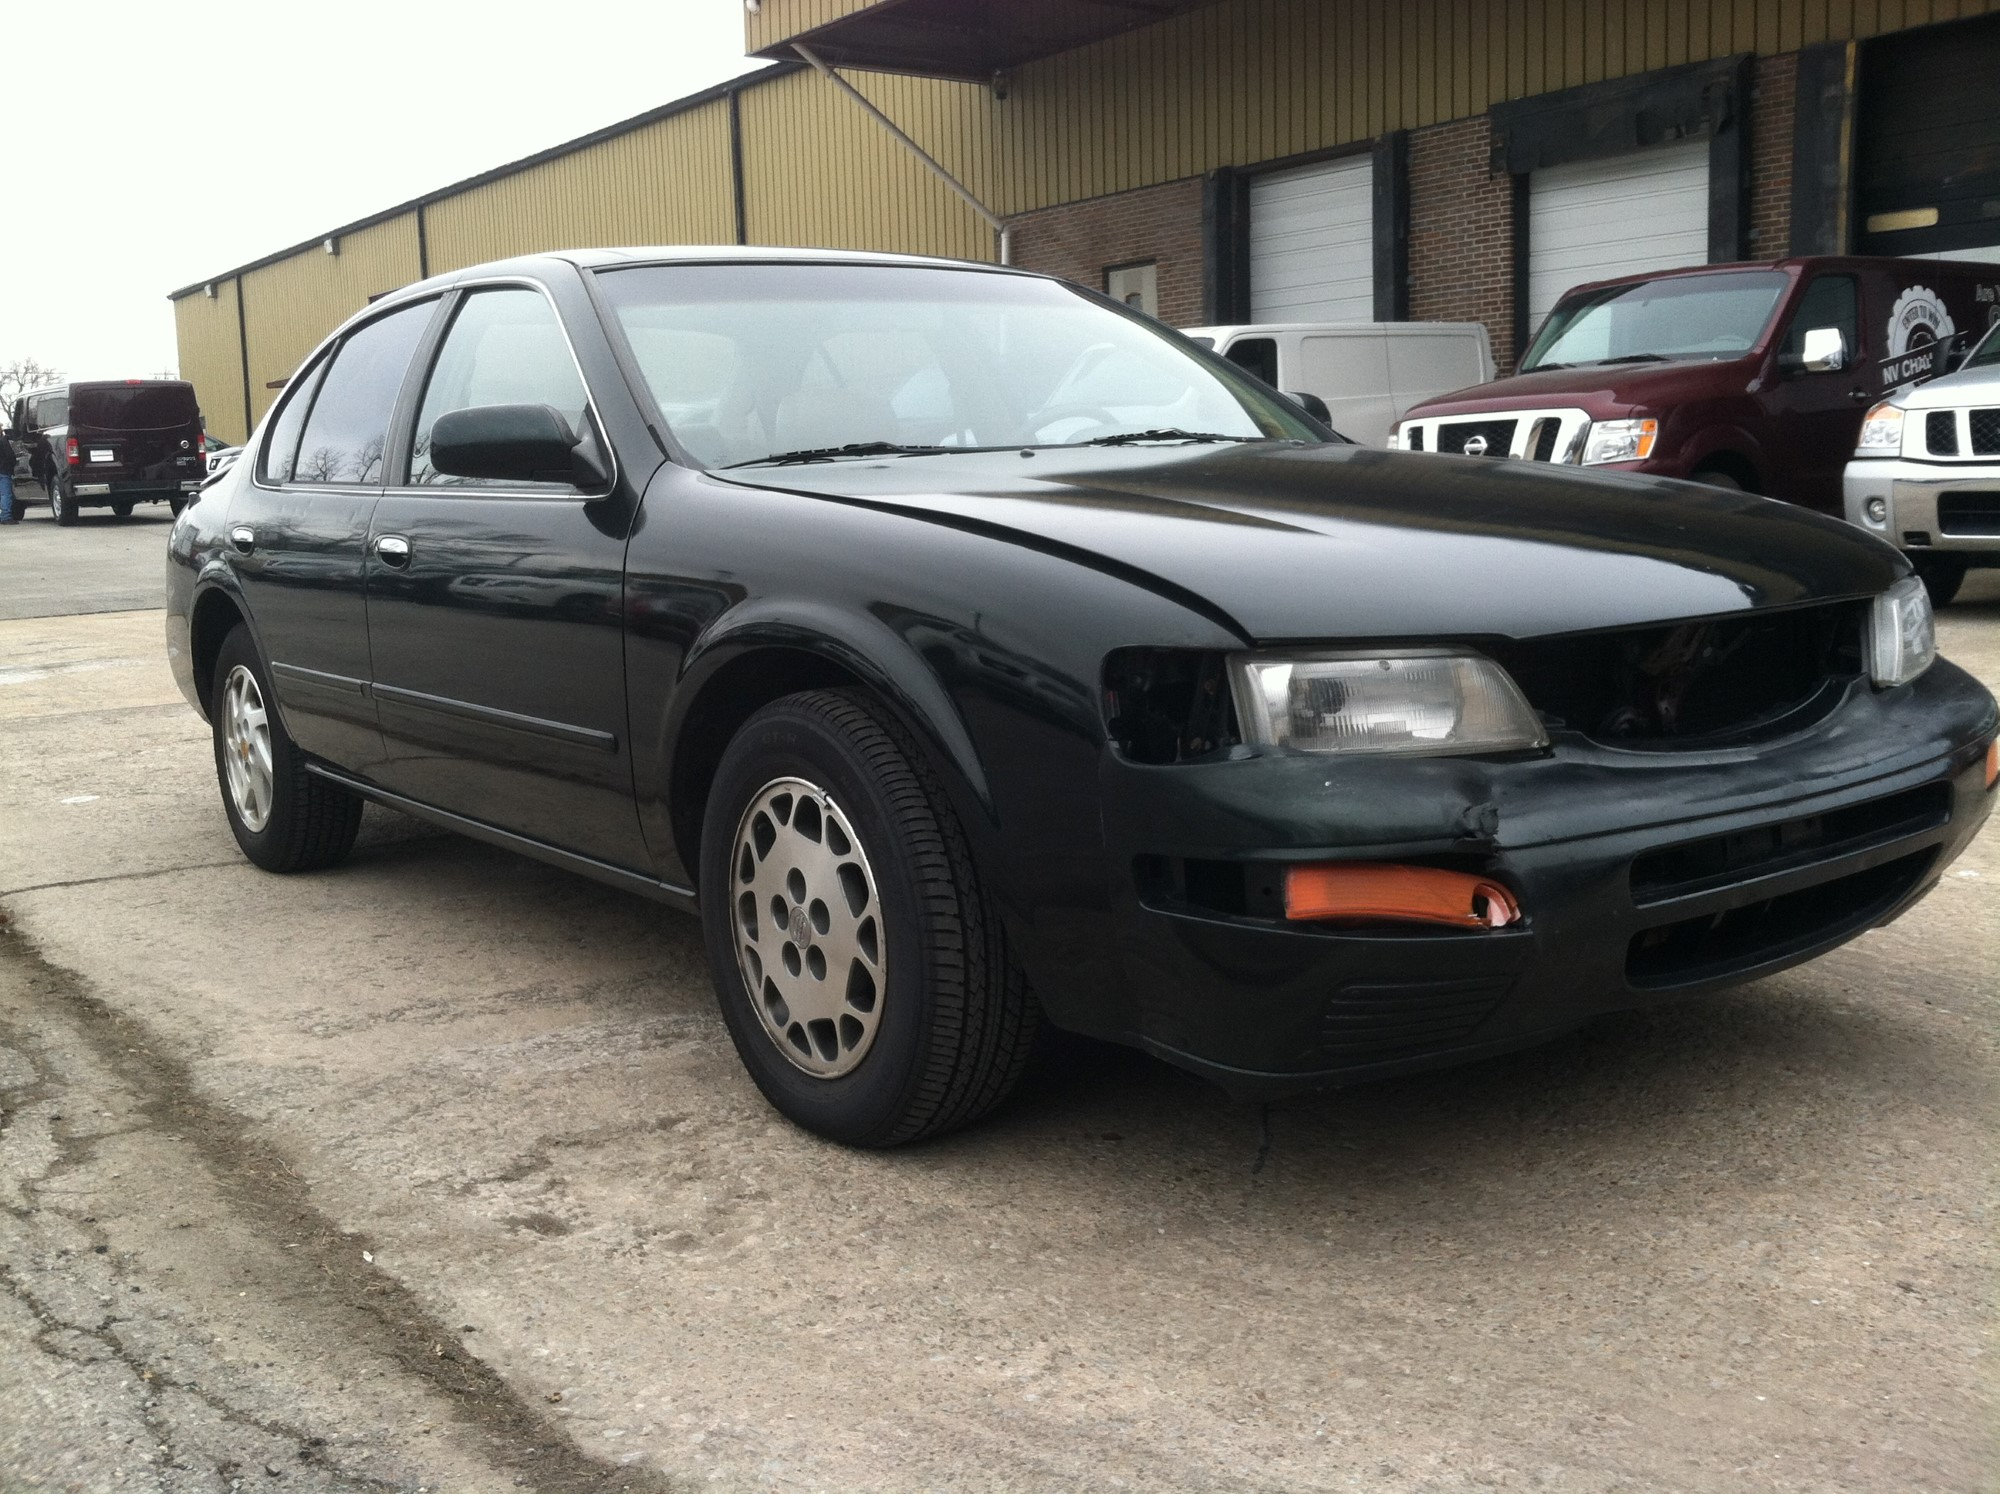 Craigslist 1996 Maxima Will Be Restored & Displayed At Nissan USA ...